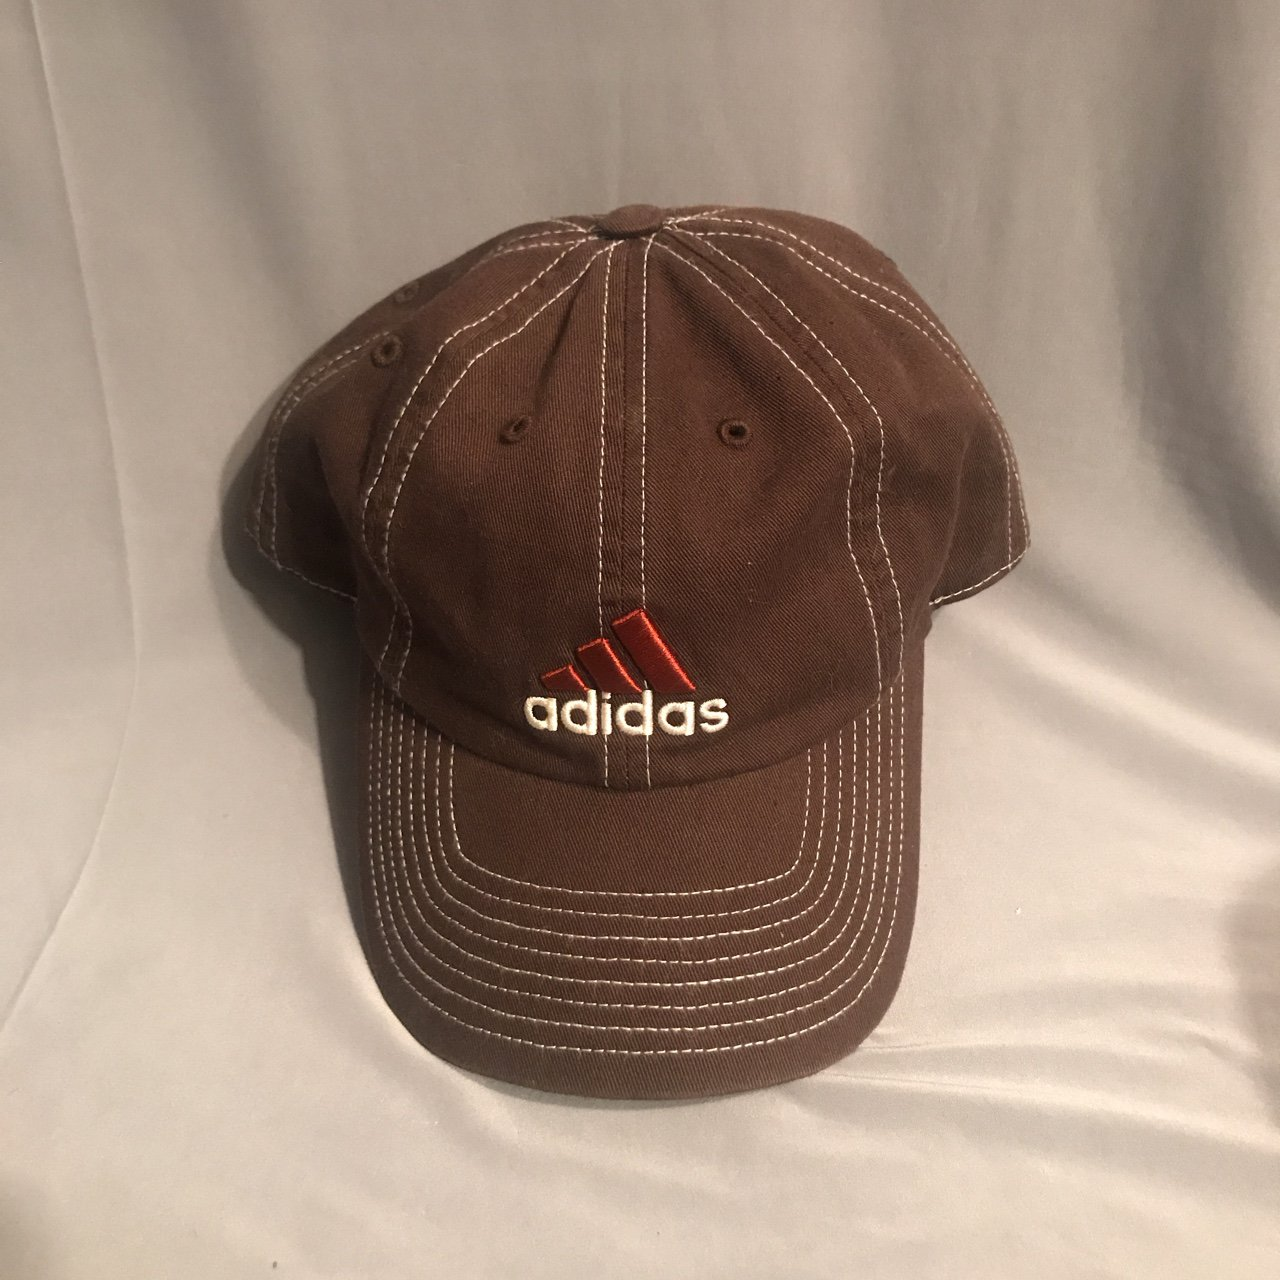 9862bfc8d61 Chocolate Brown Adidas baseball cap. Worn only a few times